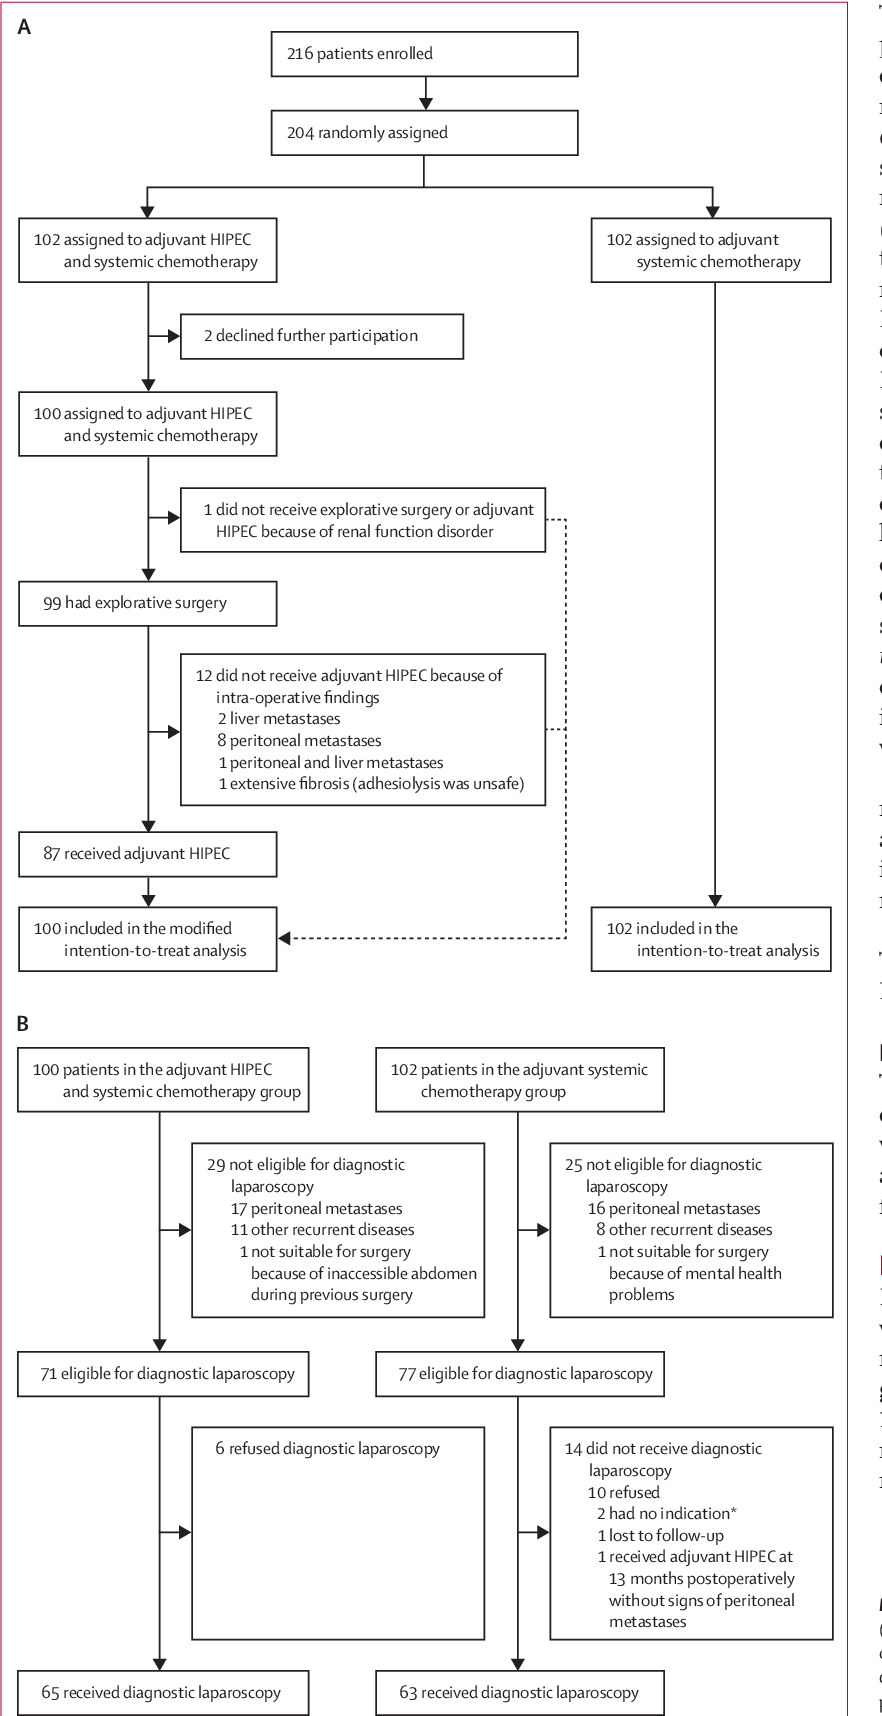 Pdf Adjuvant Hyperthermic Intraperitoneal Chemotherapy In Patients With Locally Advanced Colon Cancer Colopec A Multicentre Open Label Randomised Trial Semantic Scholar